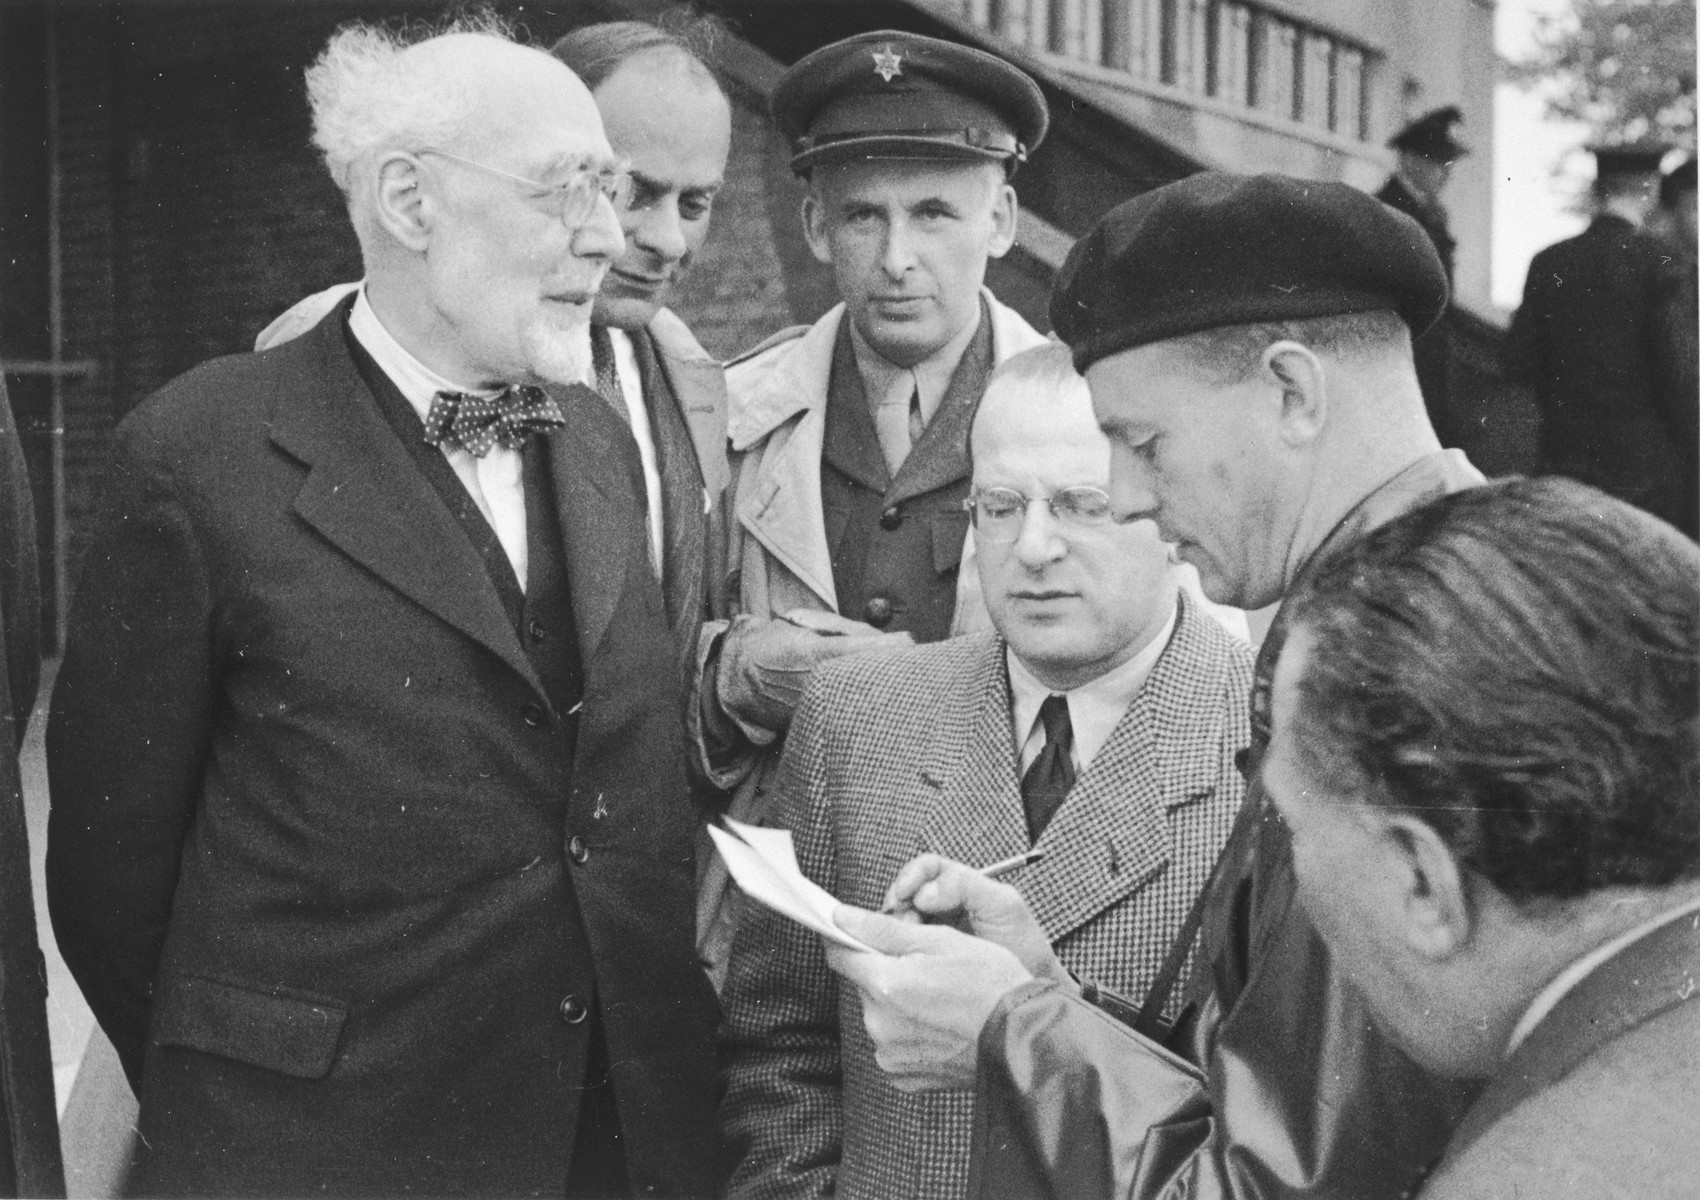 Rabbi Leo Baeck is interviewed by a British soldier upon his arrival in Hamburg at the start of a three week visit to Germany.     Also pictured are Norbert Wollheim (wearing glasses in the center) and Heinz Salomon, Leader of Jewish Welfare after the war (behind Leo Baeck).  Baeck was greeted at the airport by Norbert Wollheim, Chairman of the Central Committee of Jews in the British Zone.  Baeck's trip included participation in an evangelical congress in Darmstadt on October 12, as well as numerous appearances before local Jewish communities.